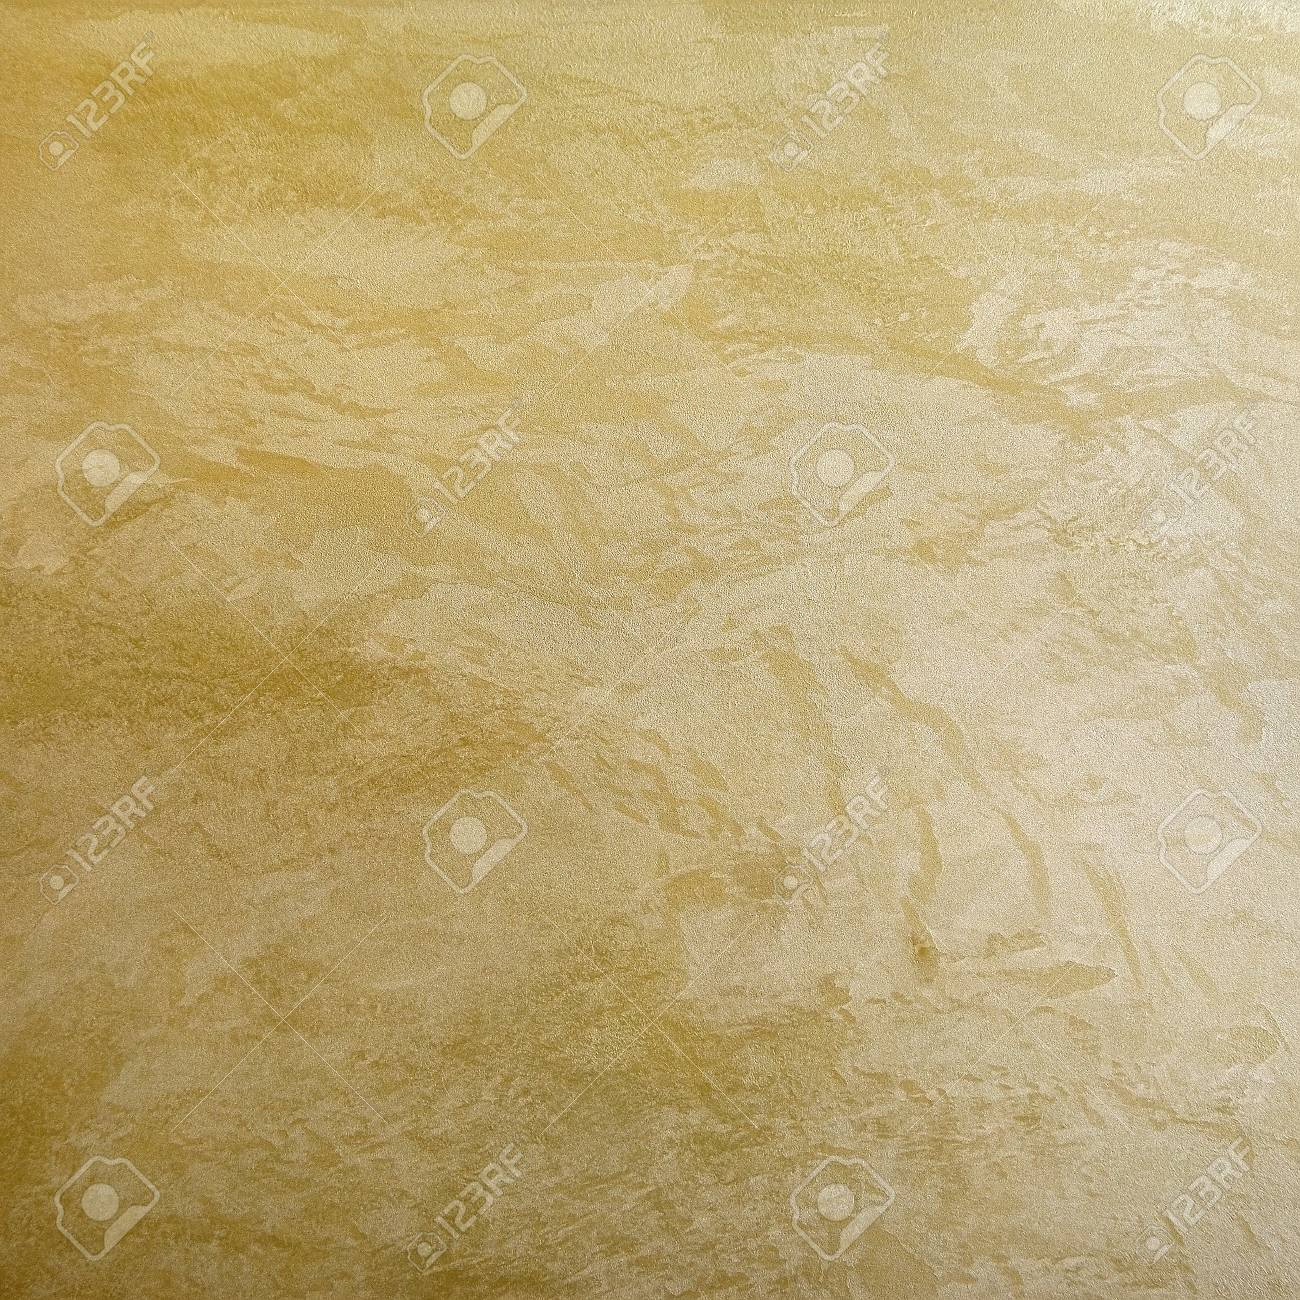 Golden Effect Decorative Plaster Surface Background For Wall Stock ...